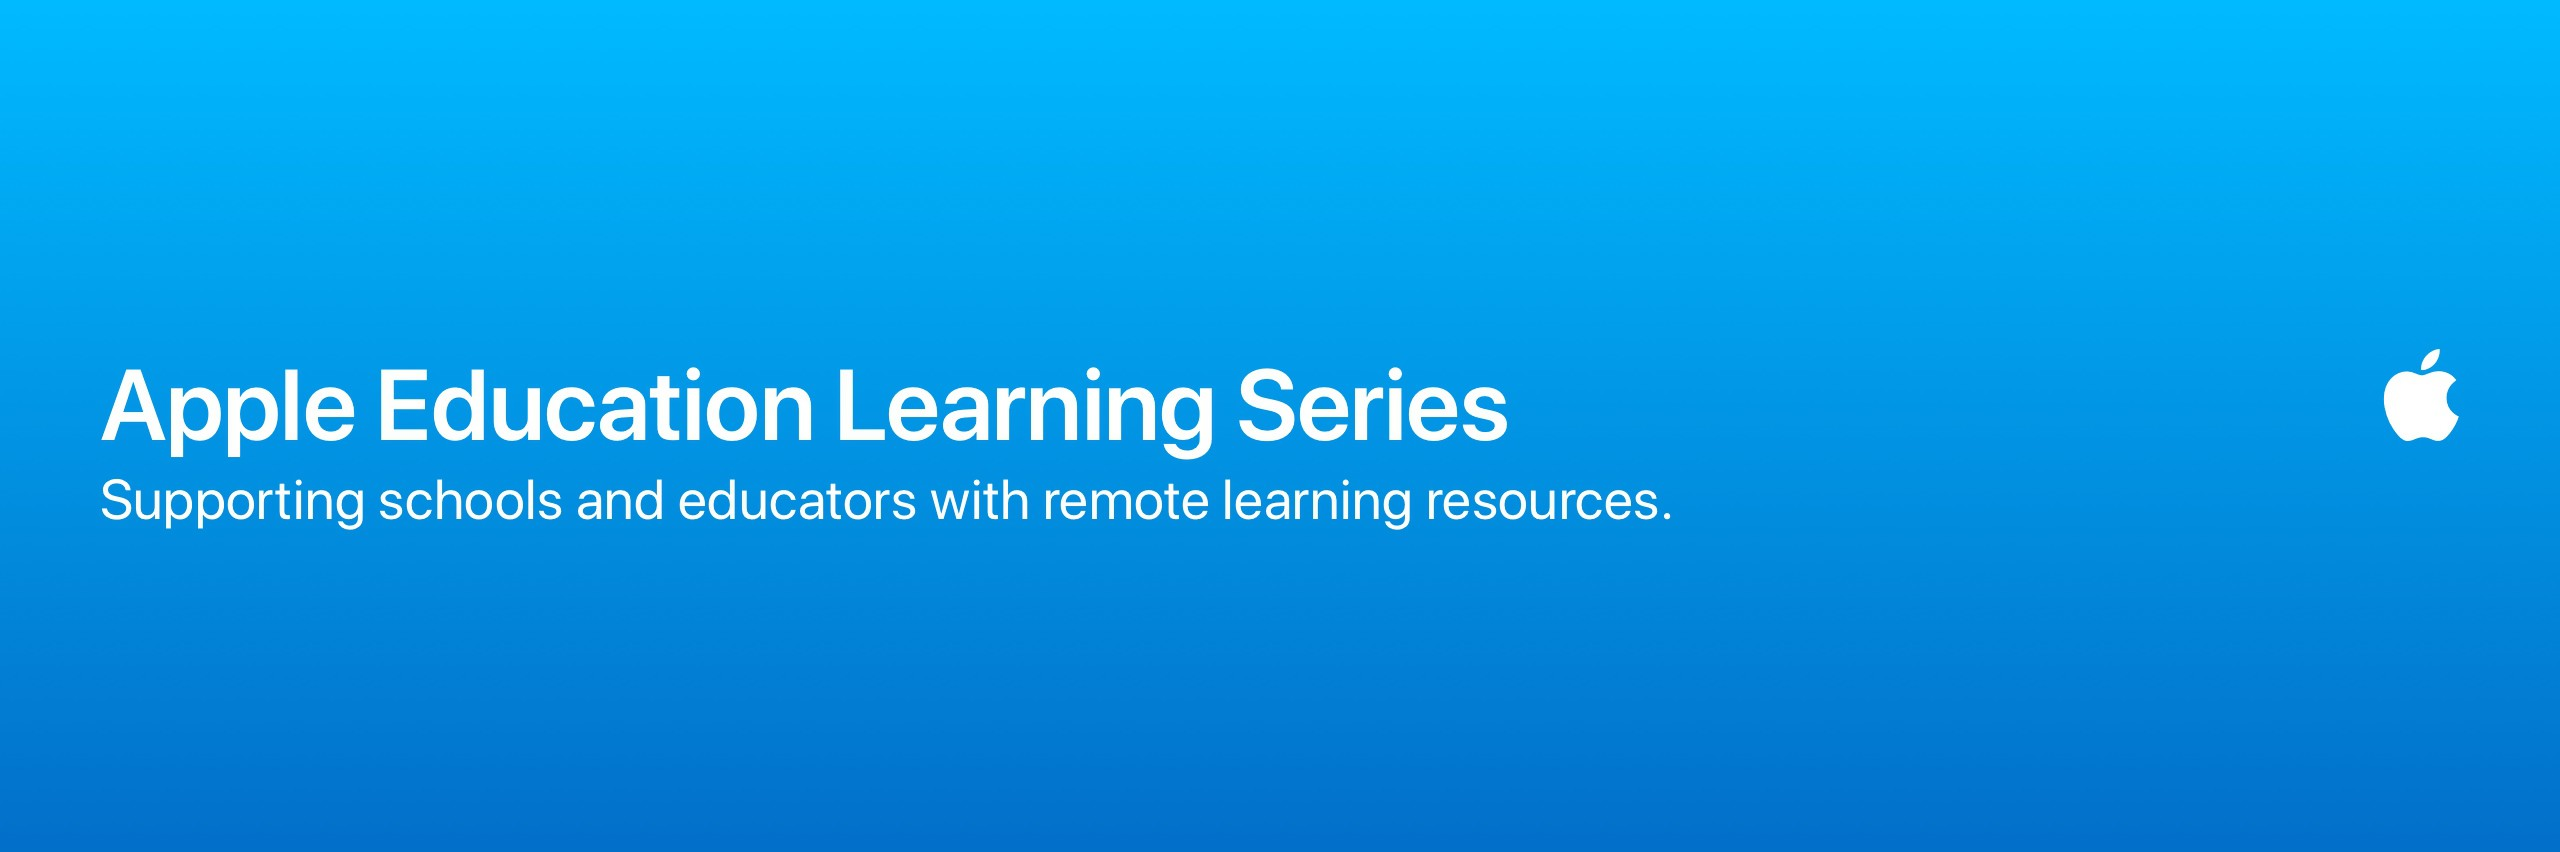 Apple Education Learning Series